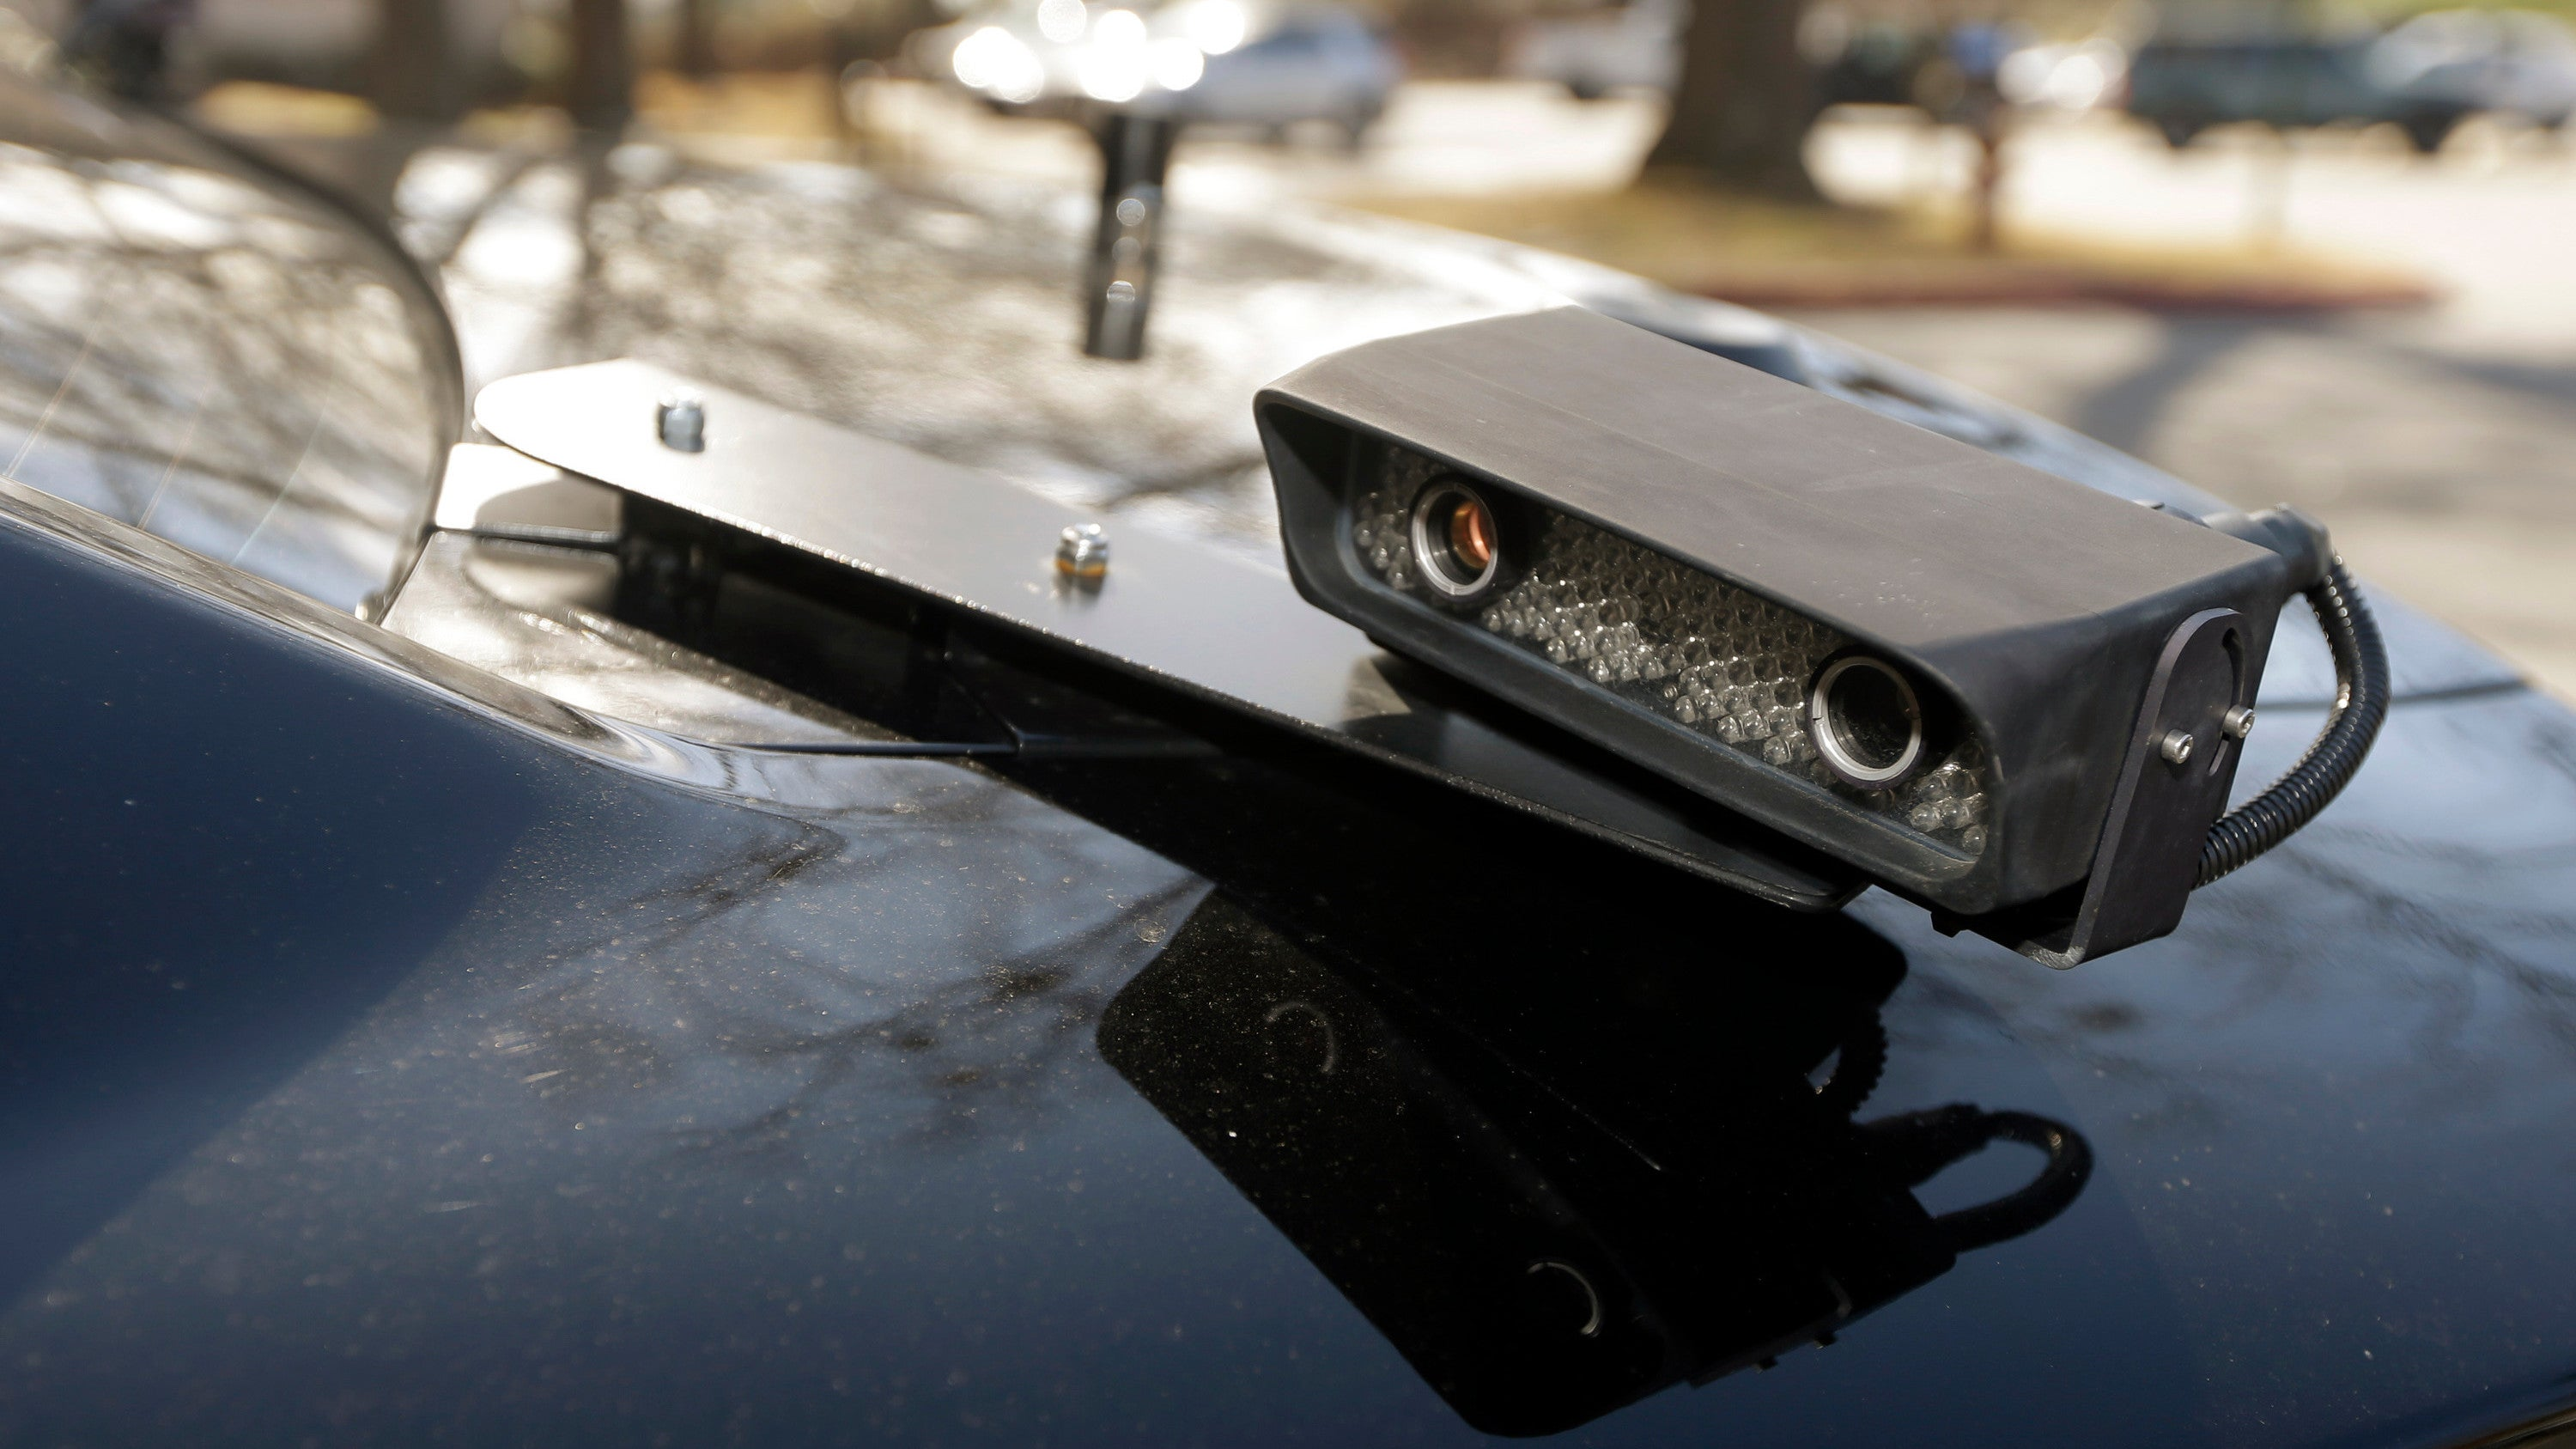 The Company That Makes The U.S. Border's Licence Plate Scanners Has Been Hacked